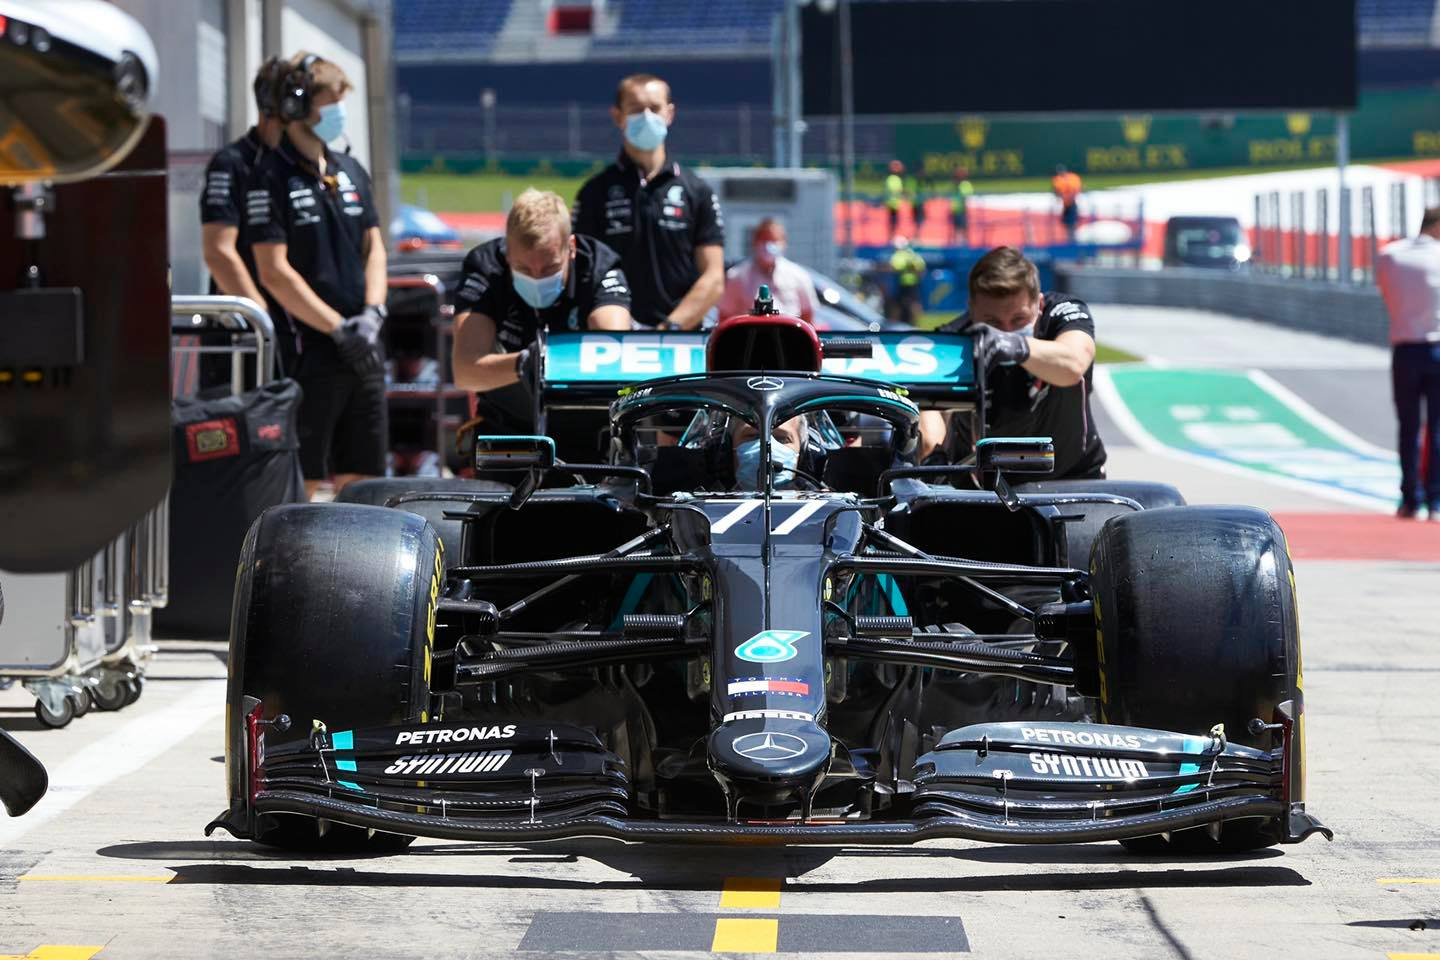 Mercedes: Gearbox woes caused by 'electrical noise' interference - F1i.com